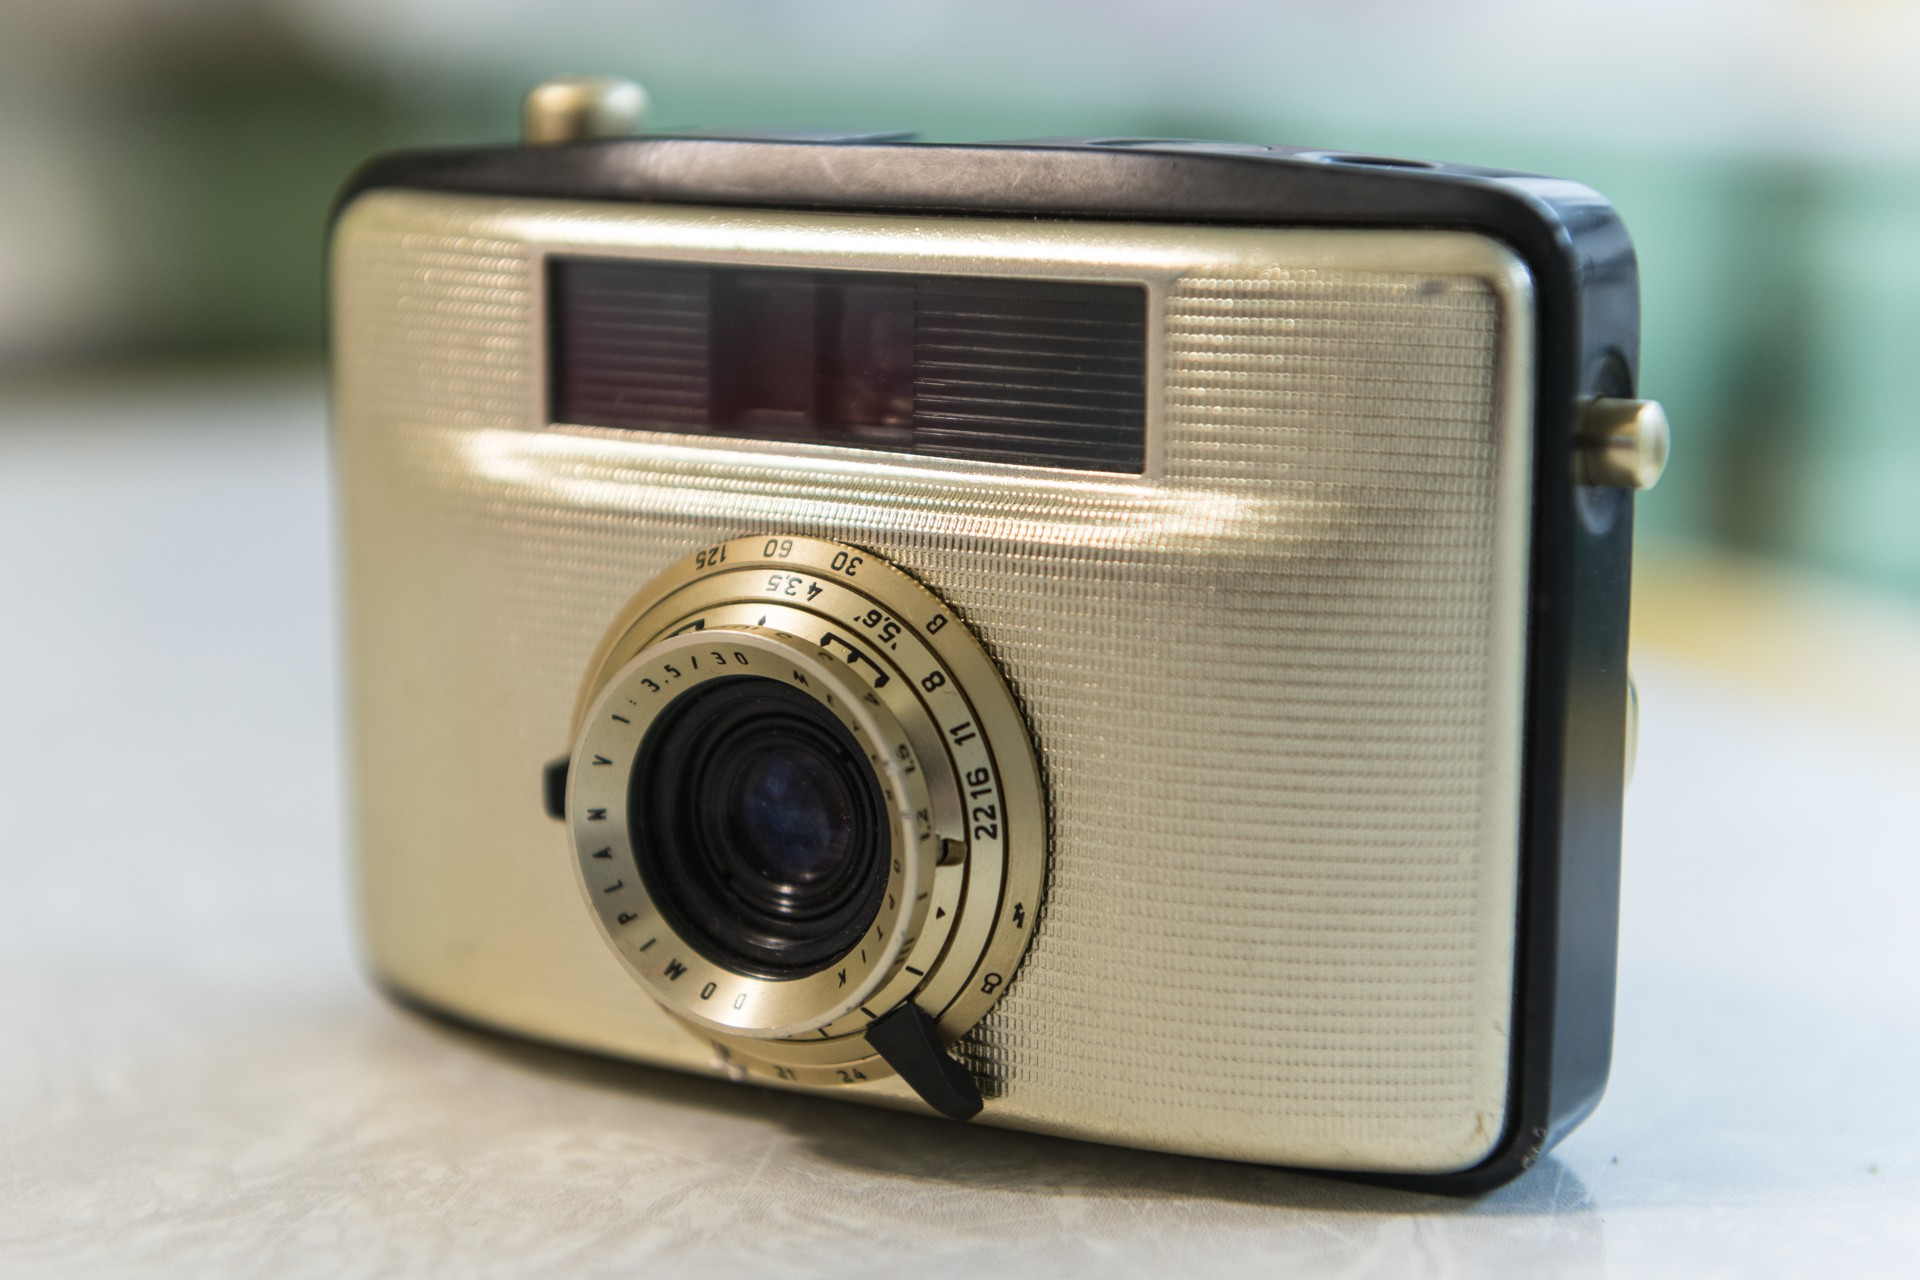 The Welta Penti I was manufactured in the former East Germany in the late 1950s.  It is a beauty of a little half-frame camera!